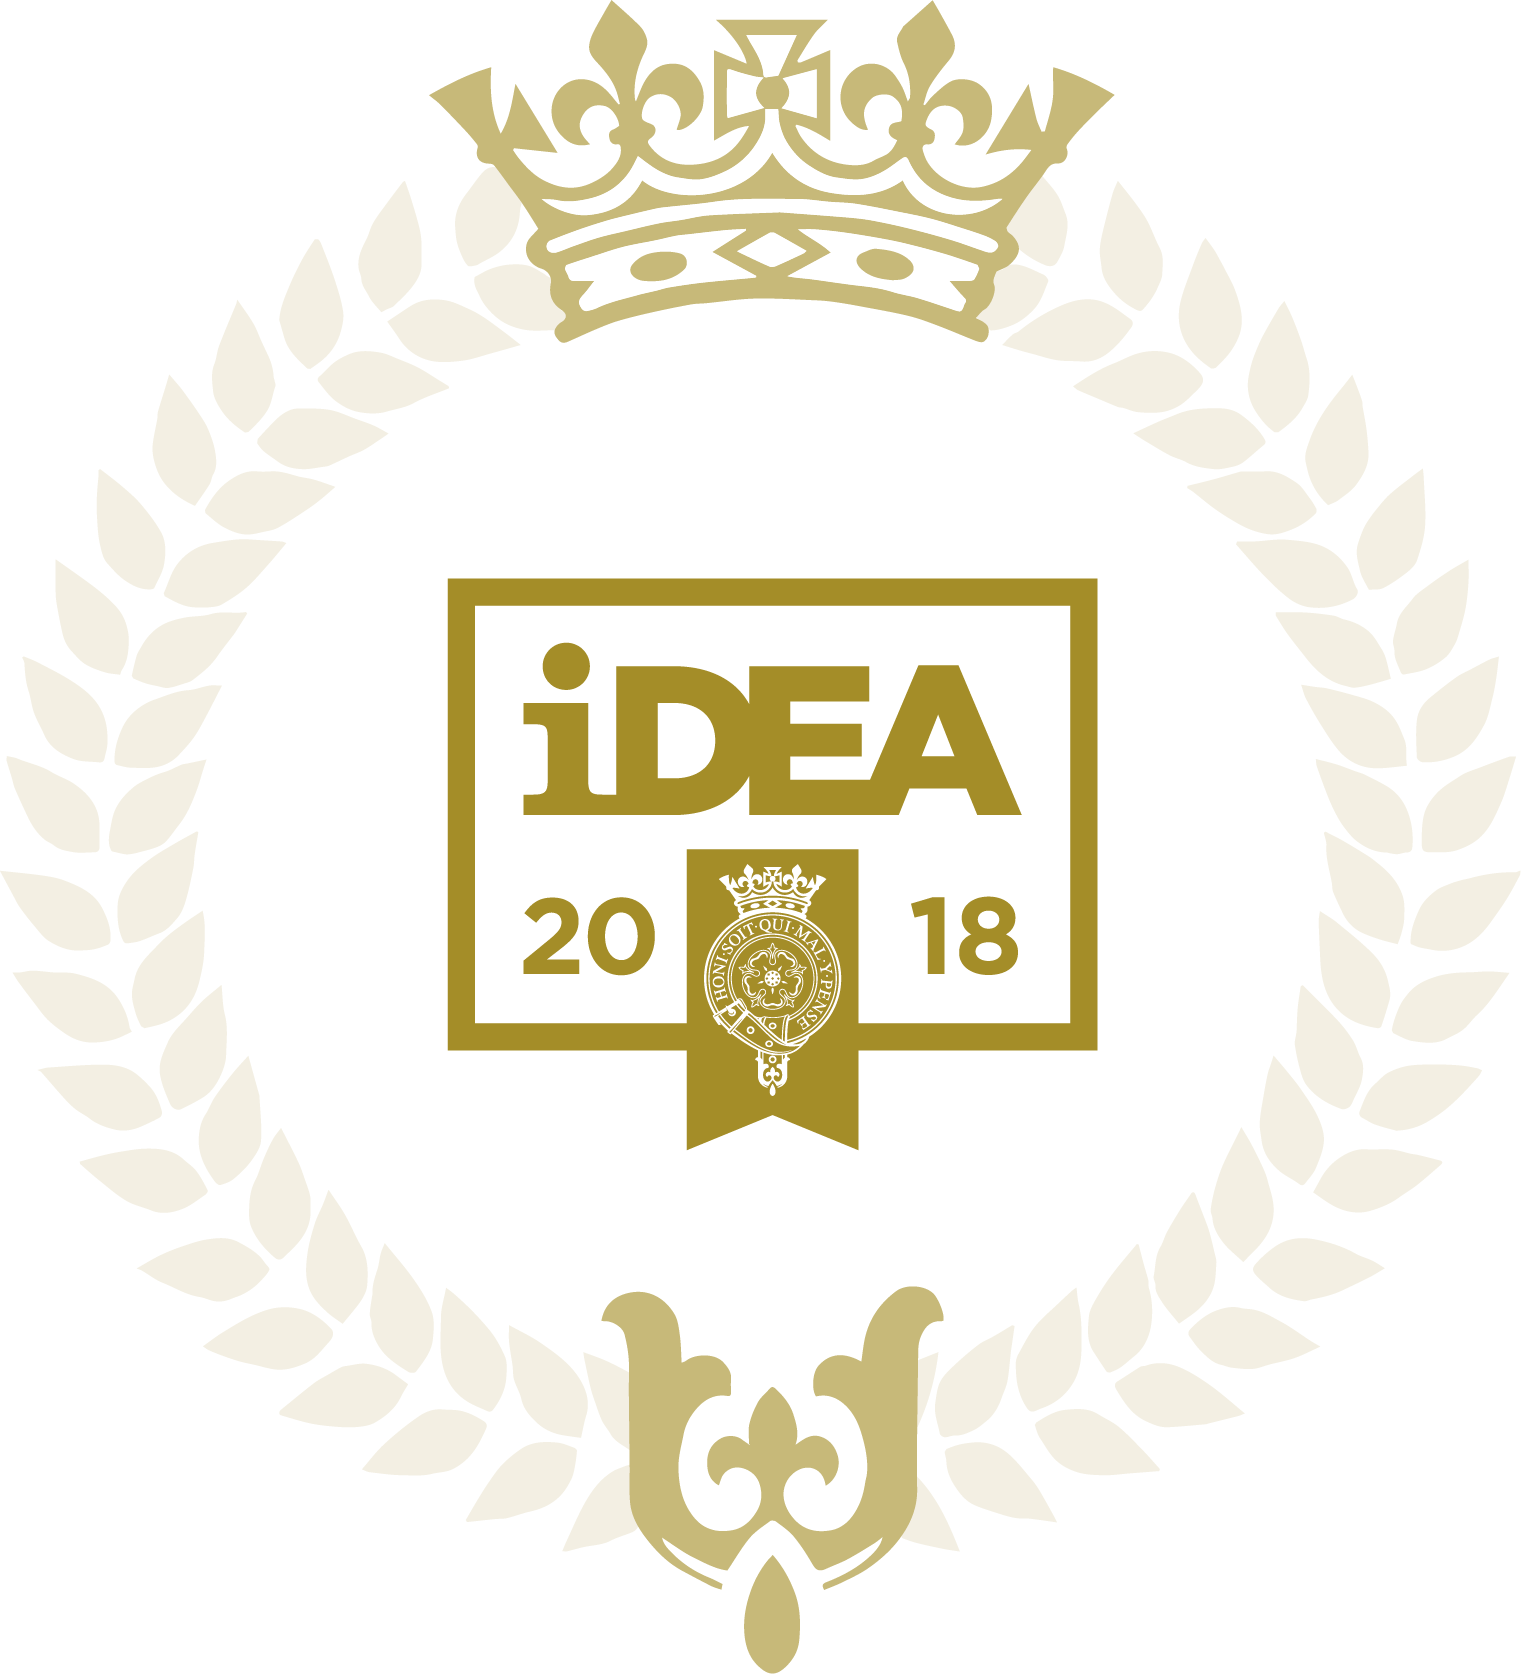 The Duke of York Inspiring Digital Enterprise Award (iDEA) Bronze Award wreath logo 2018